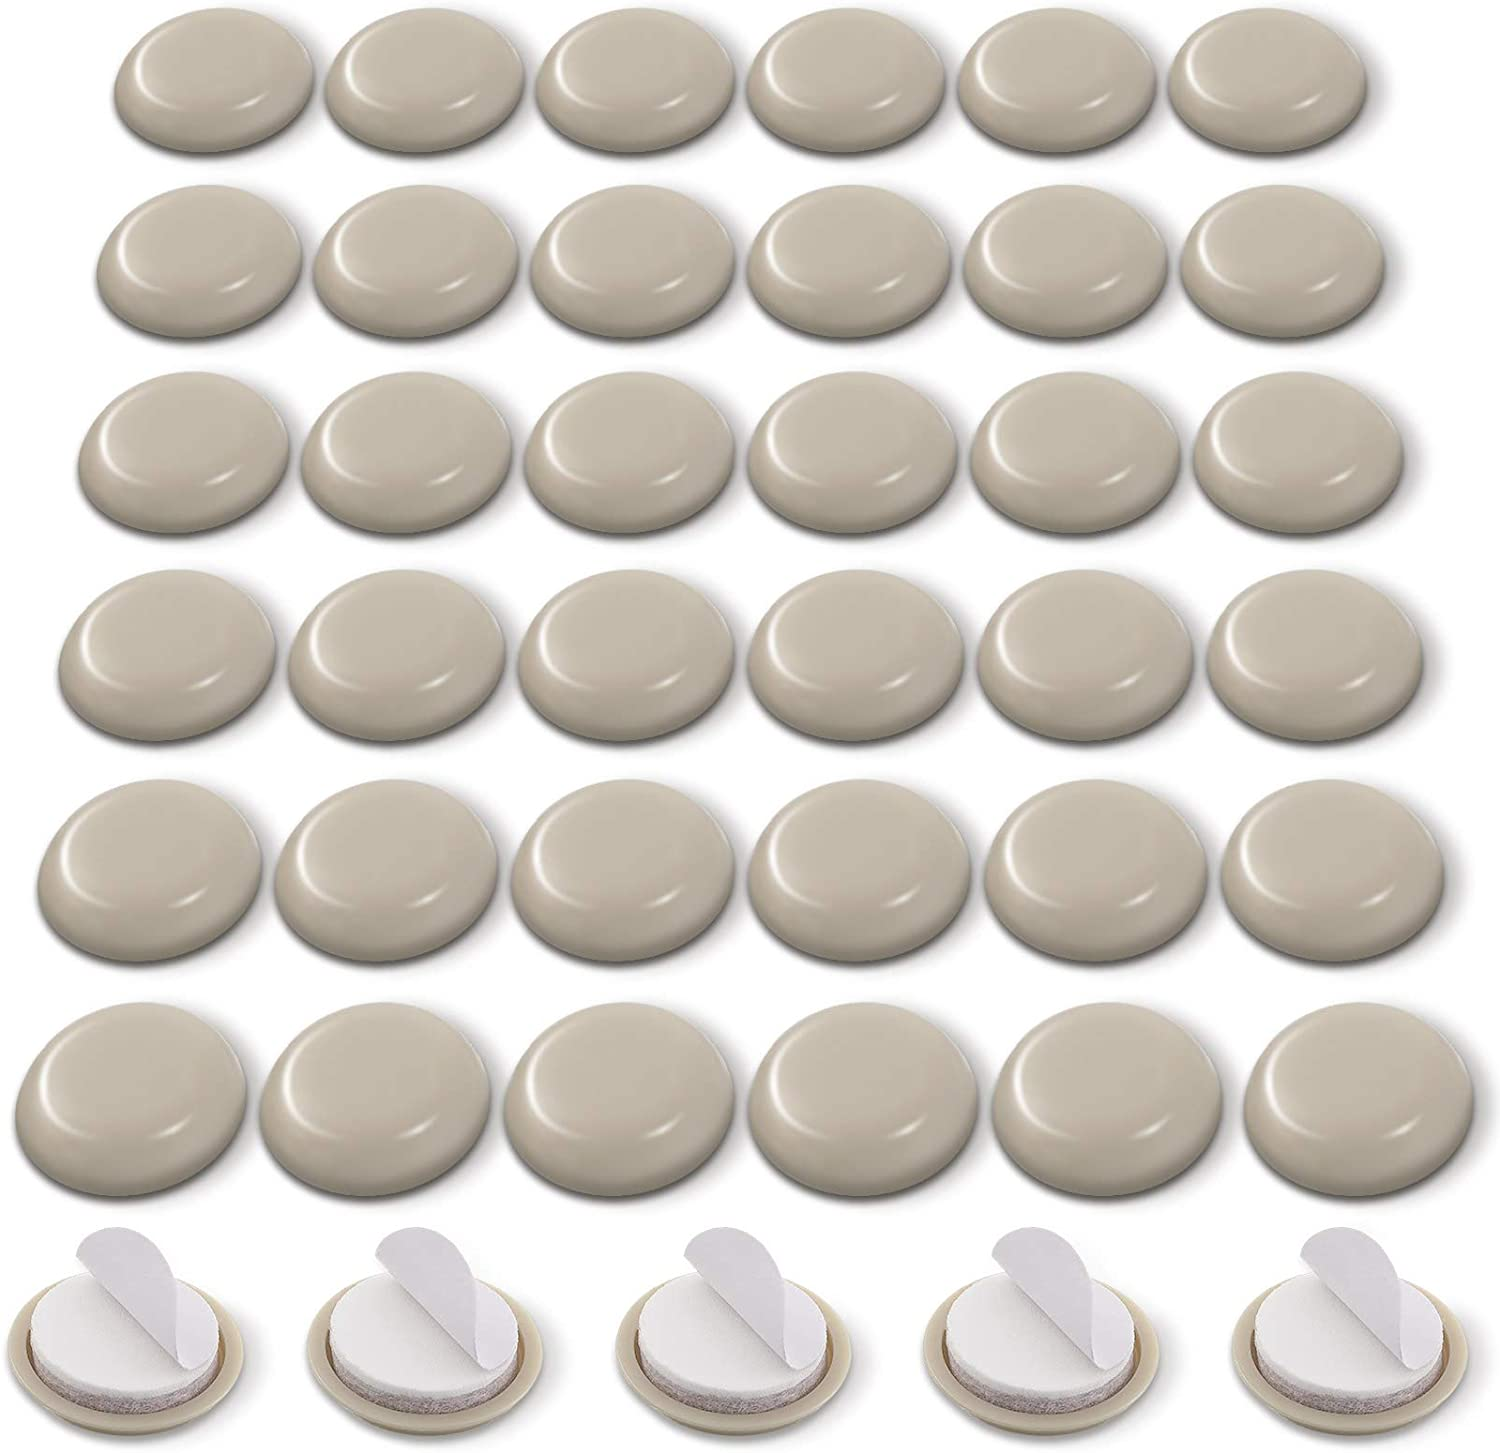 36 Pieces Adhesive Furniture Glides Sliders 1-3/4 Inch Self-Stick Furniture Chair Sliders Round Furniture Moving Pads Furniture Movers for Carpet